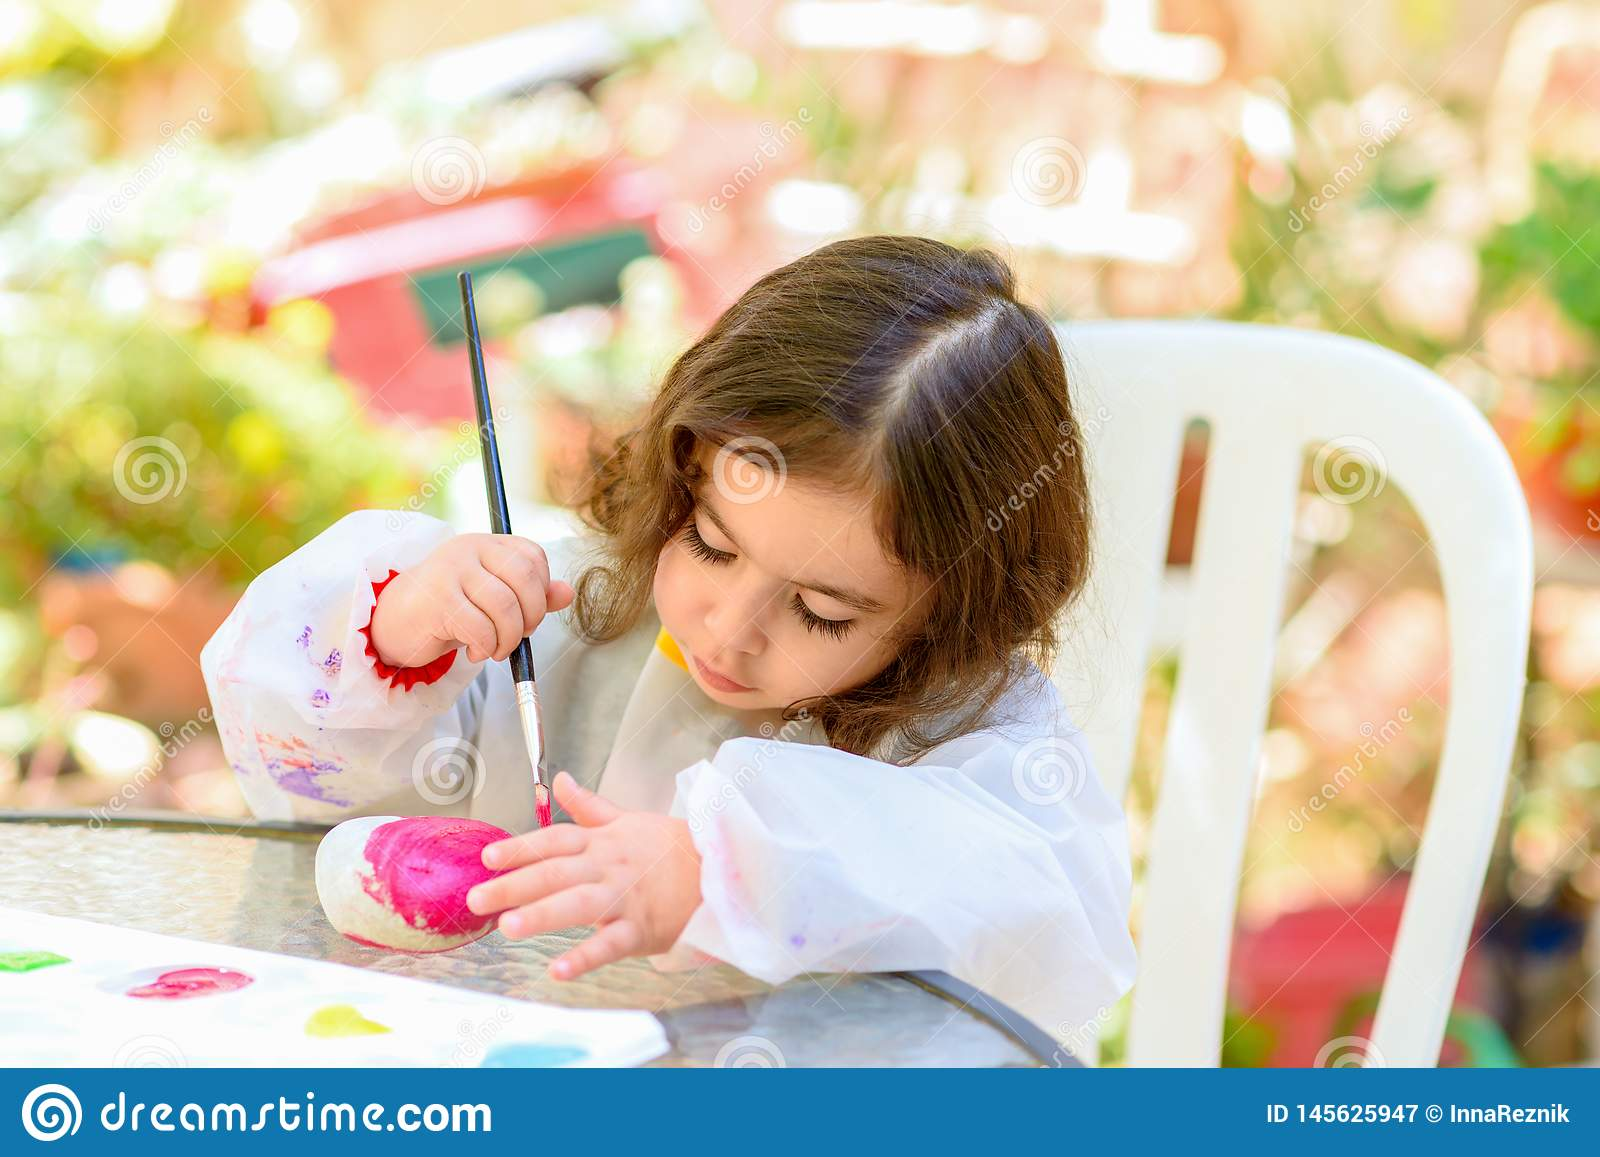 Little Girl Drawing On Stone Outdoors In Summer Sunny Day.